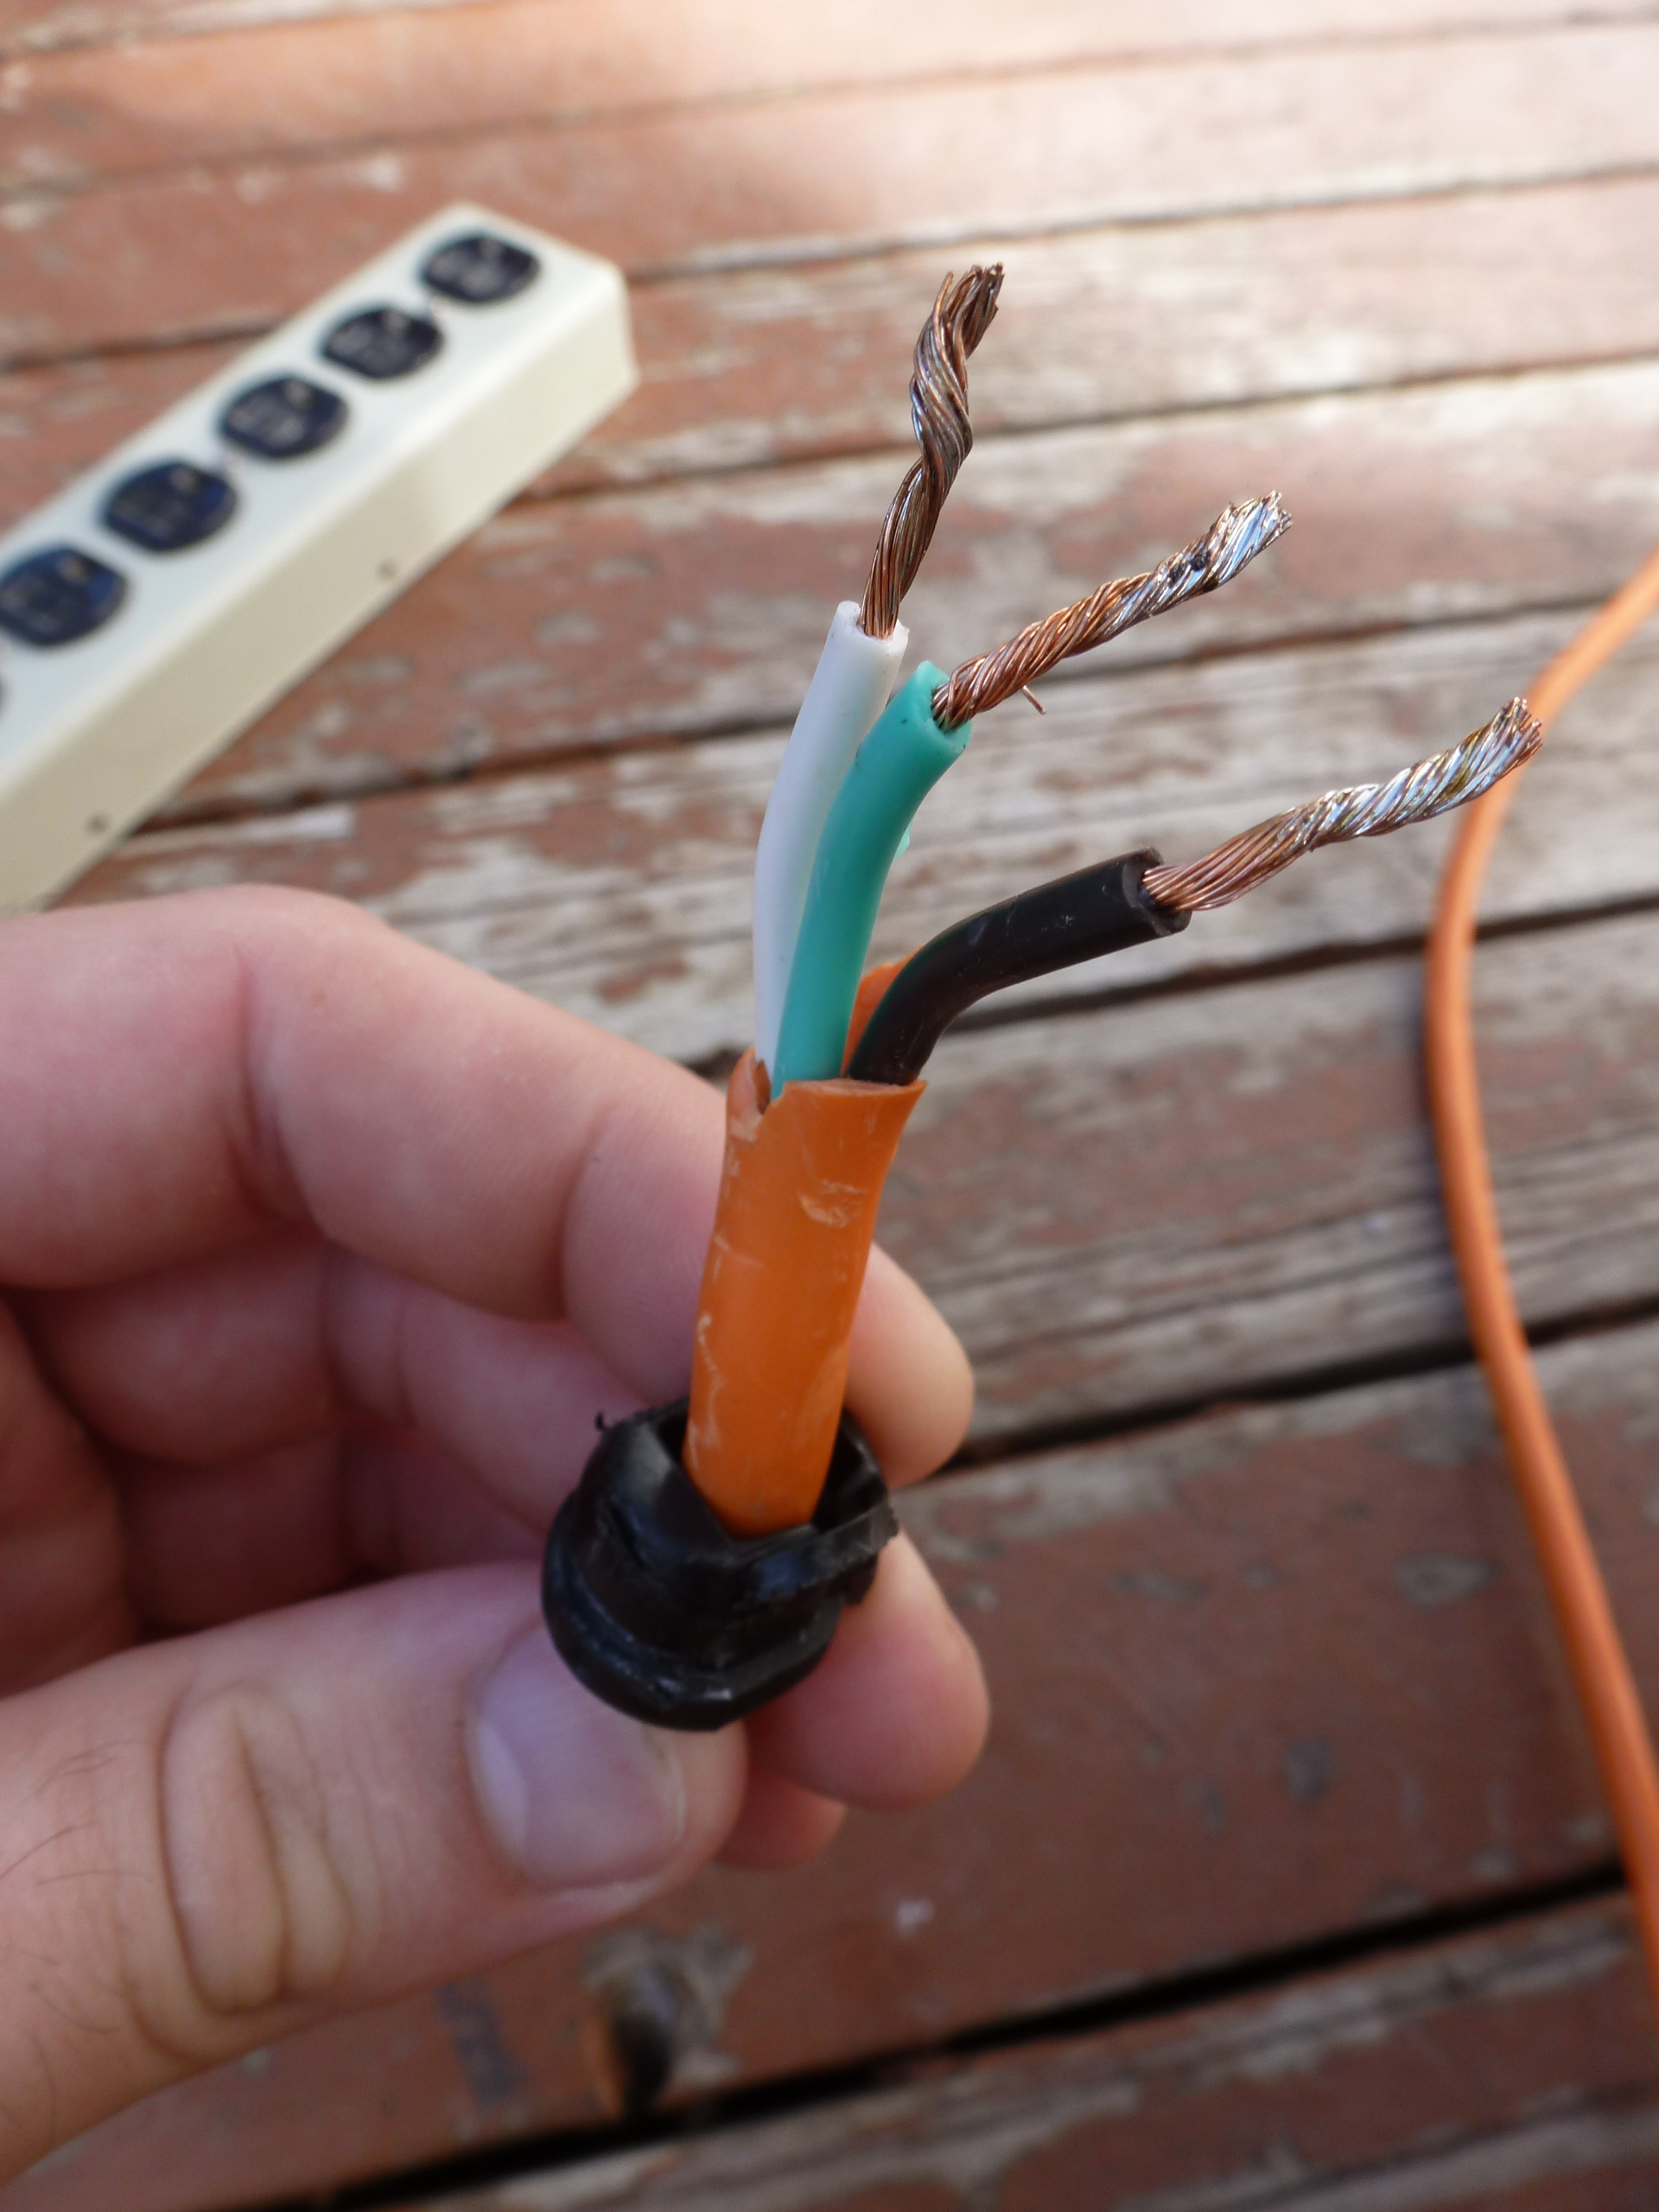 Turtles And Tails: Diy A Built-In Extension Outlet - Extension Cord Wiring Diagram